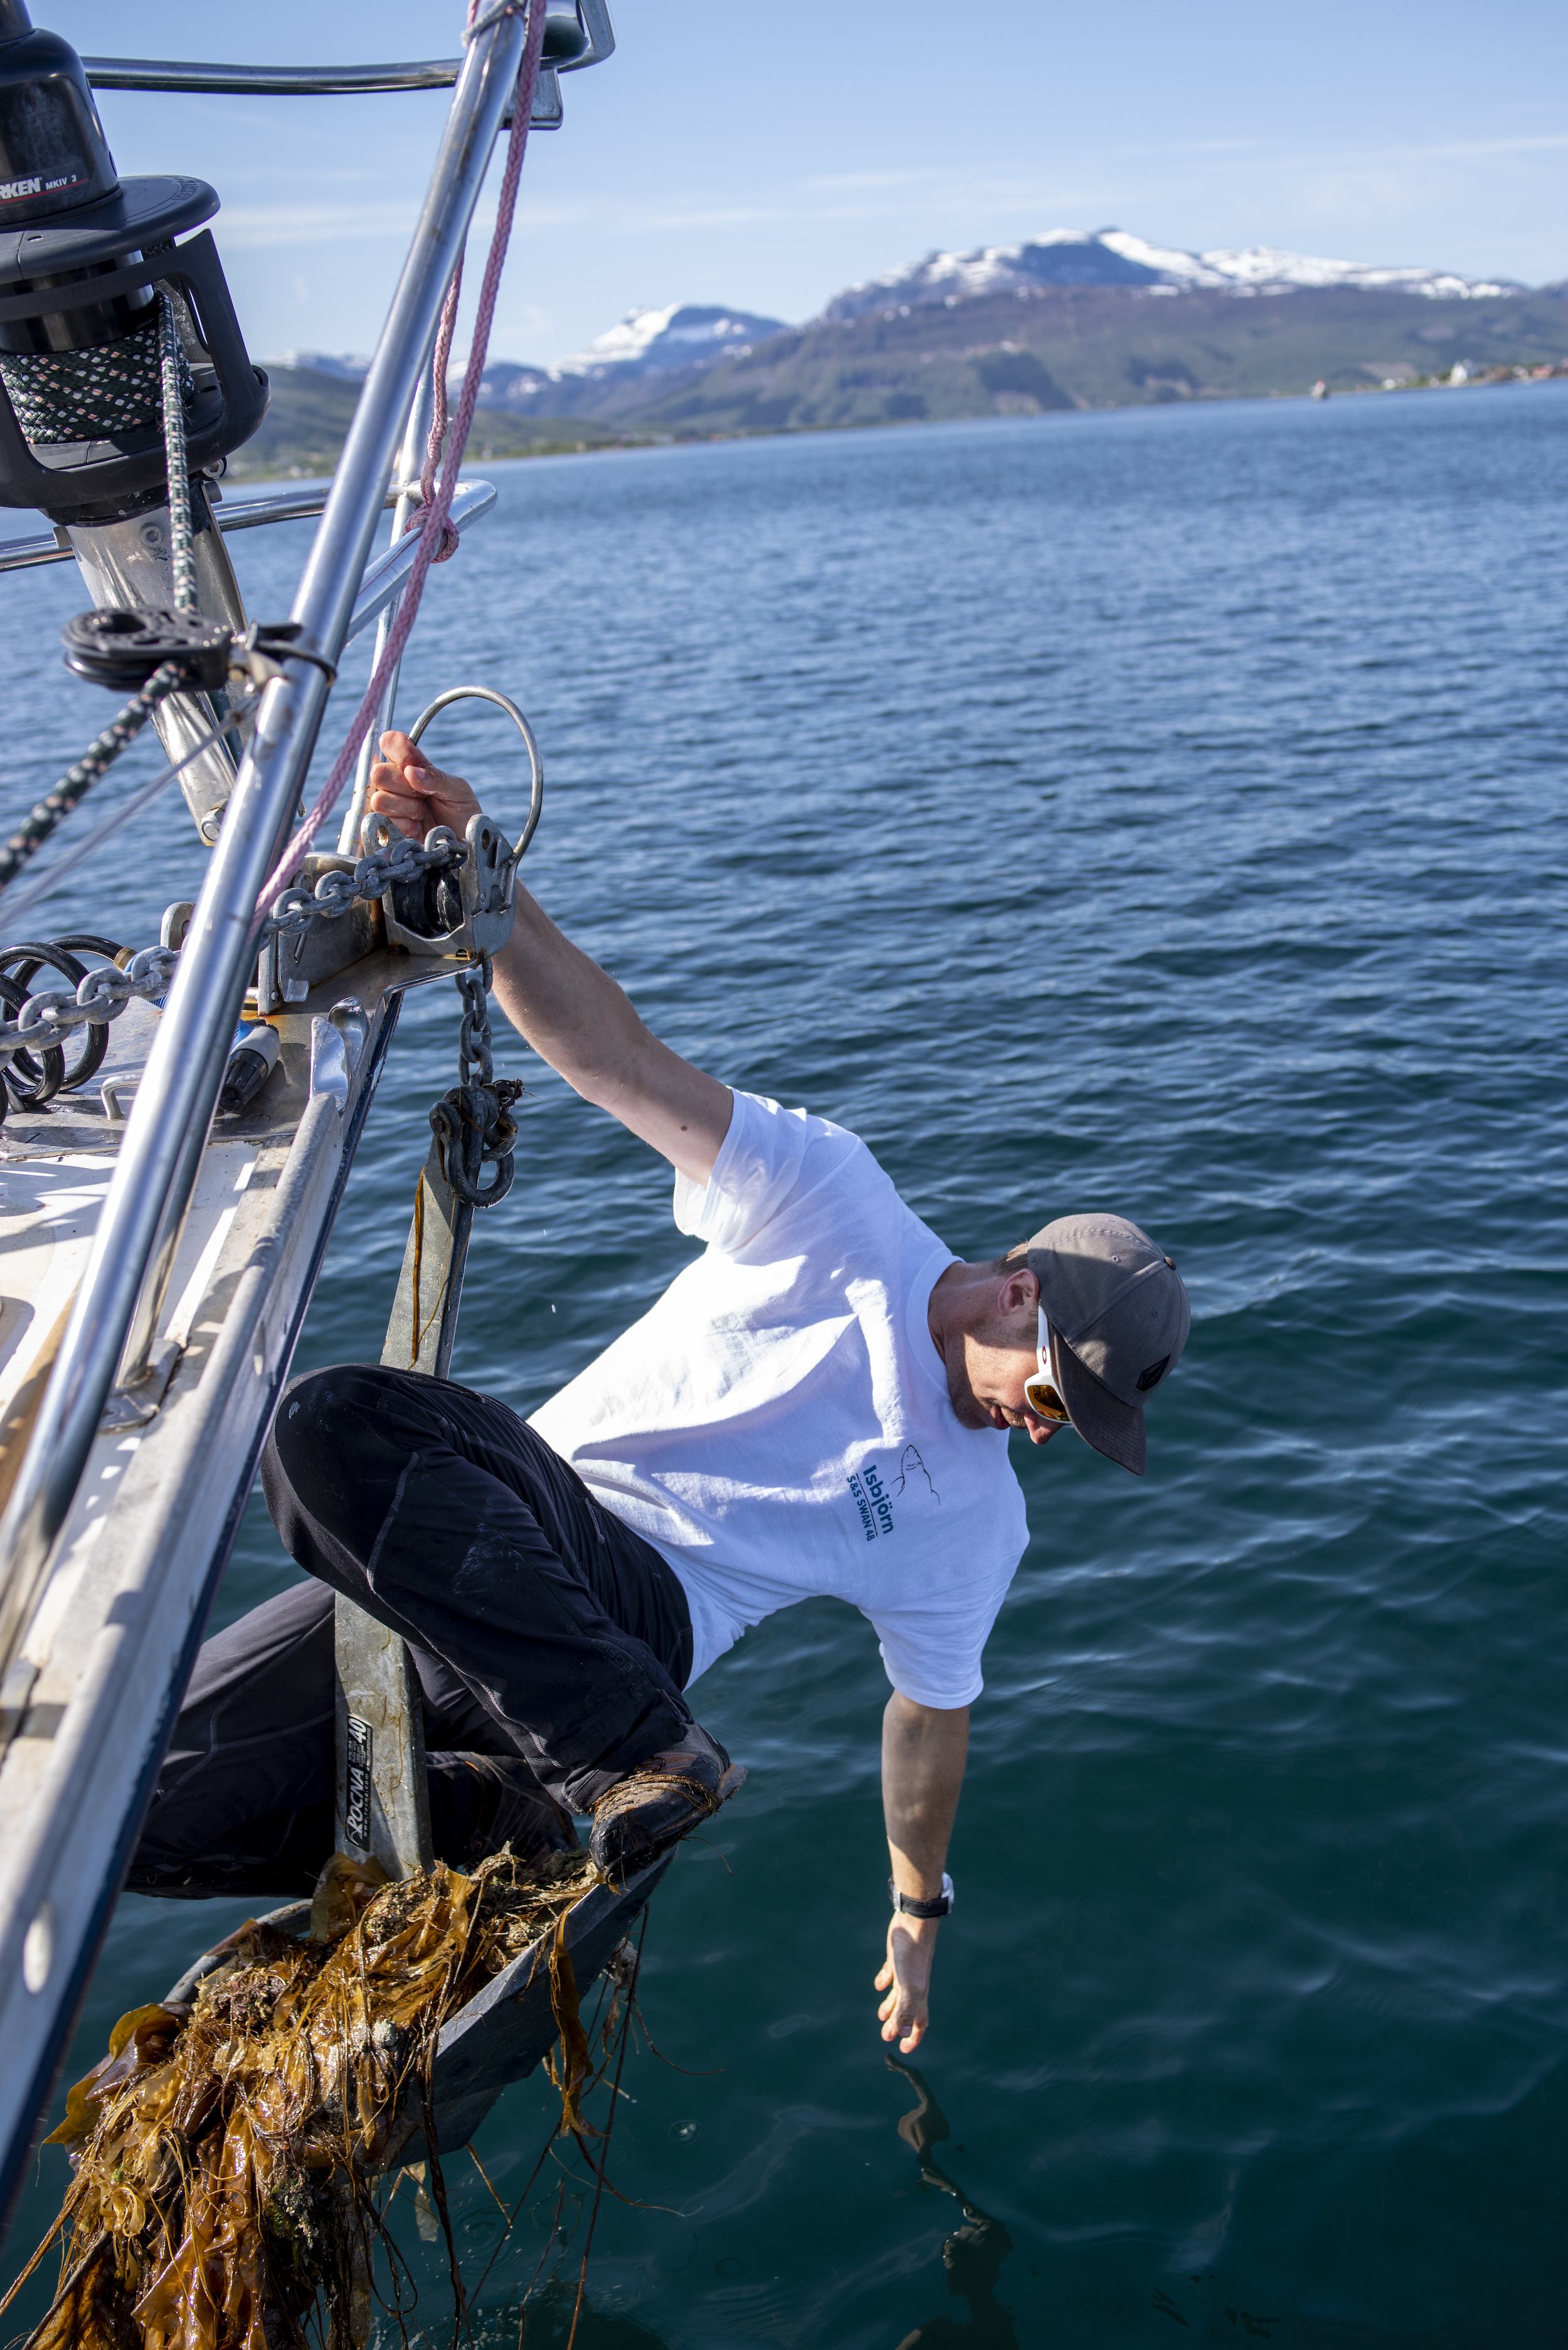 Seaweed in the anchorage! James is multi-talented - as a lifelong climber, he was well-suited to this task!